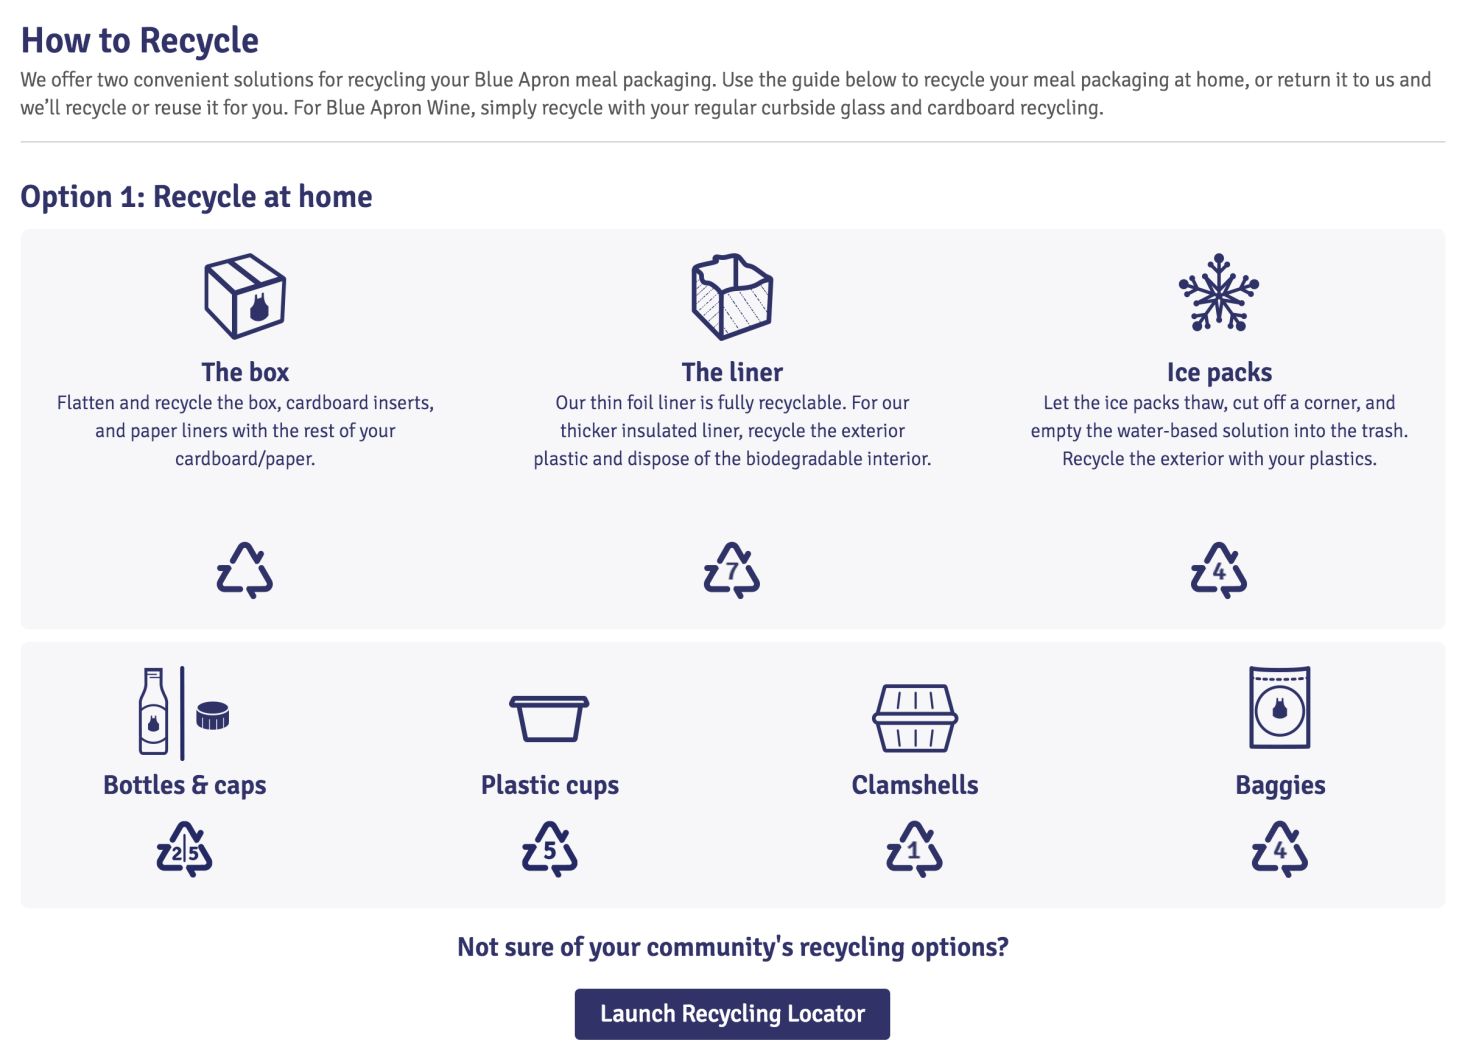 Blue Apron's recycling guide.